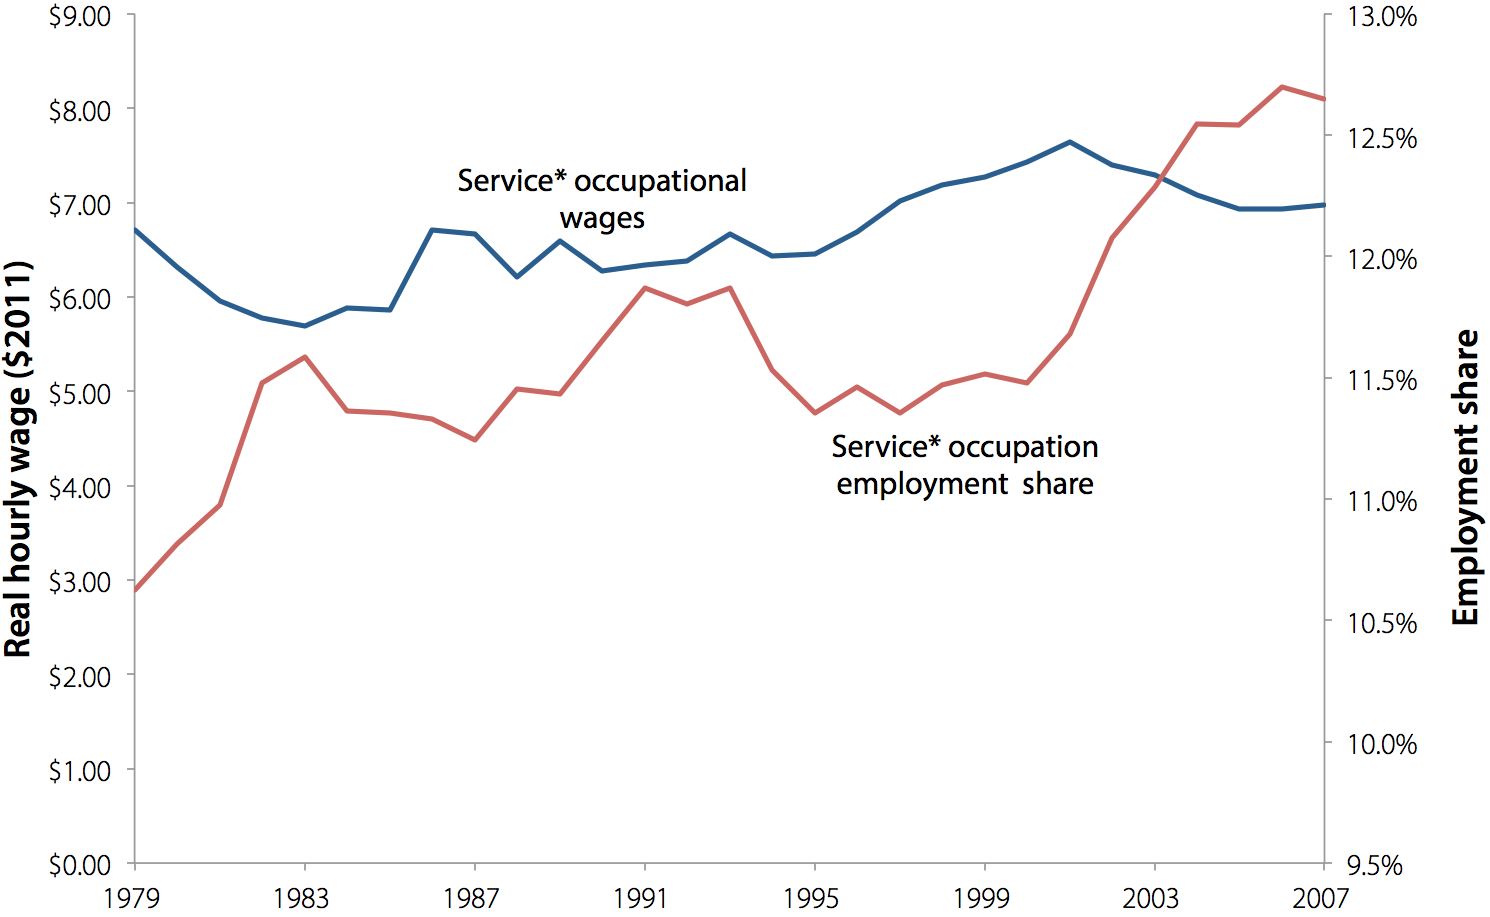 Service* occupation wage and employment share, 1979–2007